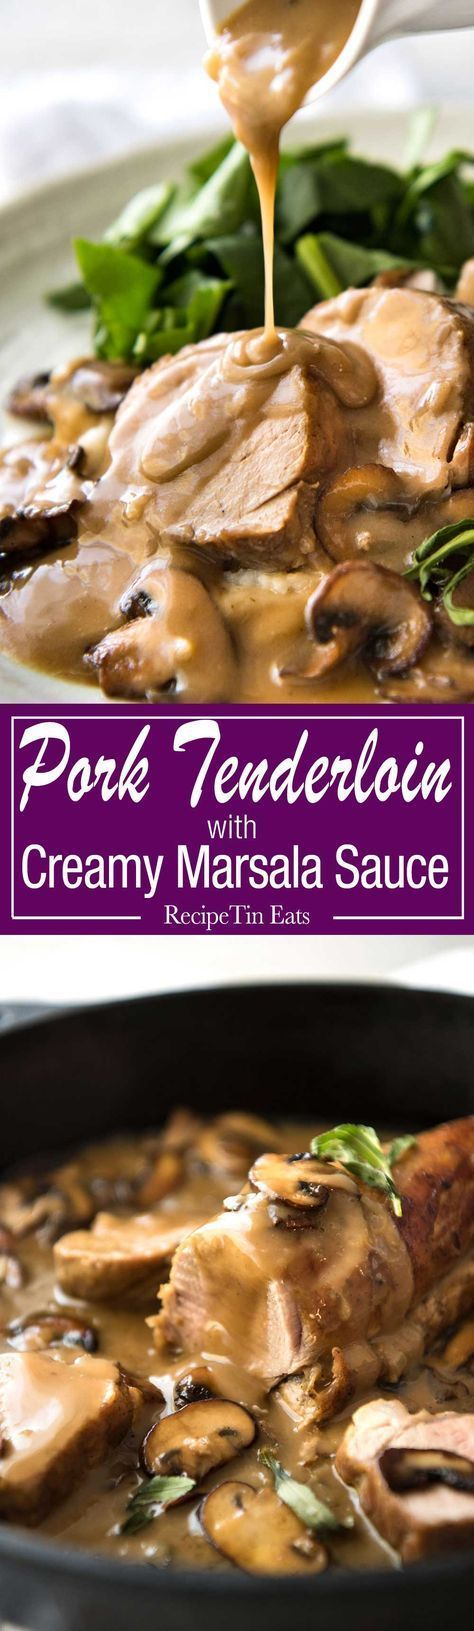 Pork Tenderloin served with a Creamy Marsala Mushroom Sauce - so easy to make, yet impressive enough for company! www.recipetineats...